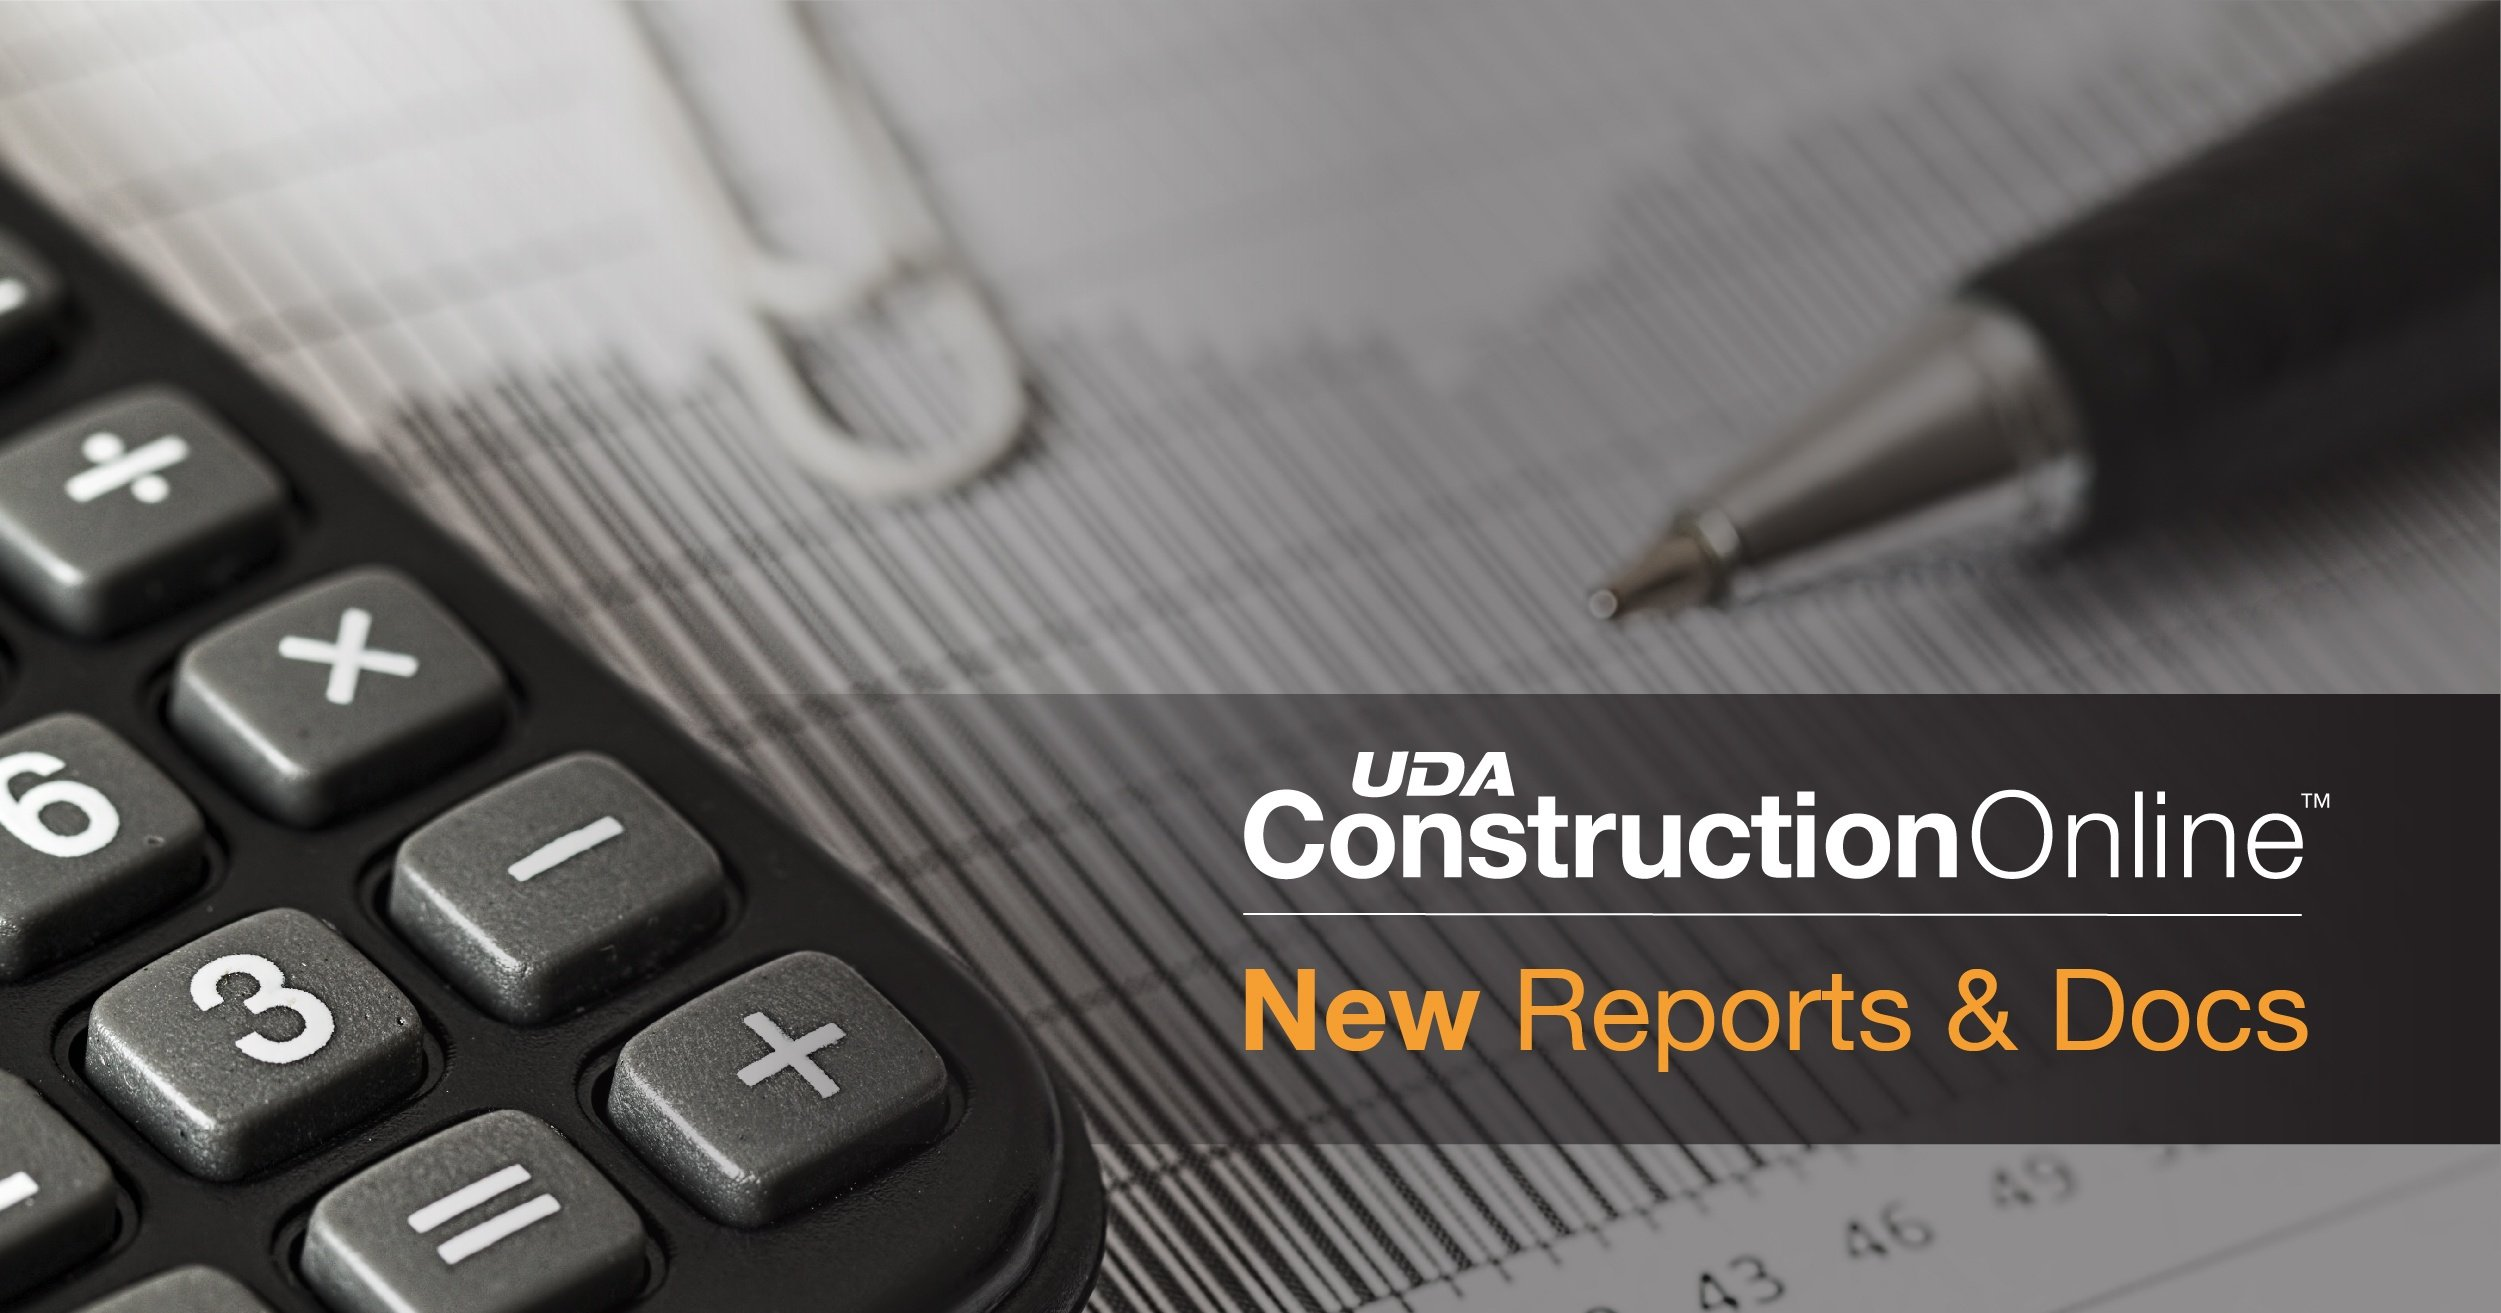 Five New Reports and Documents Added to ConstructionOnline